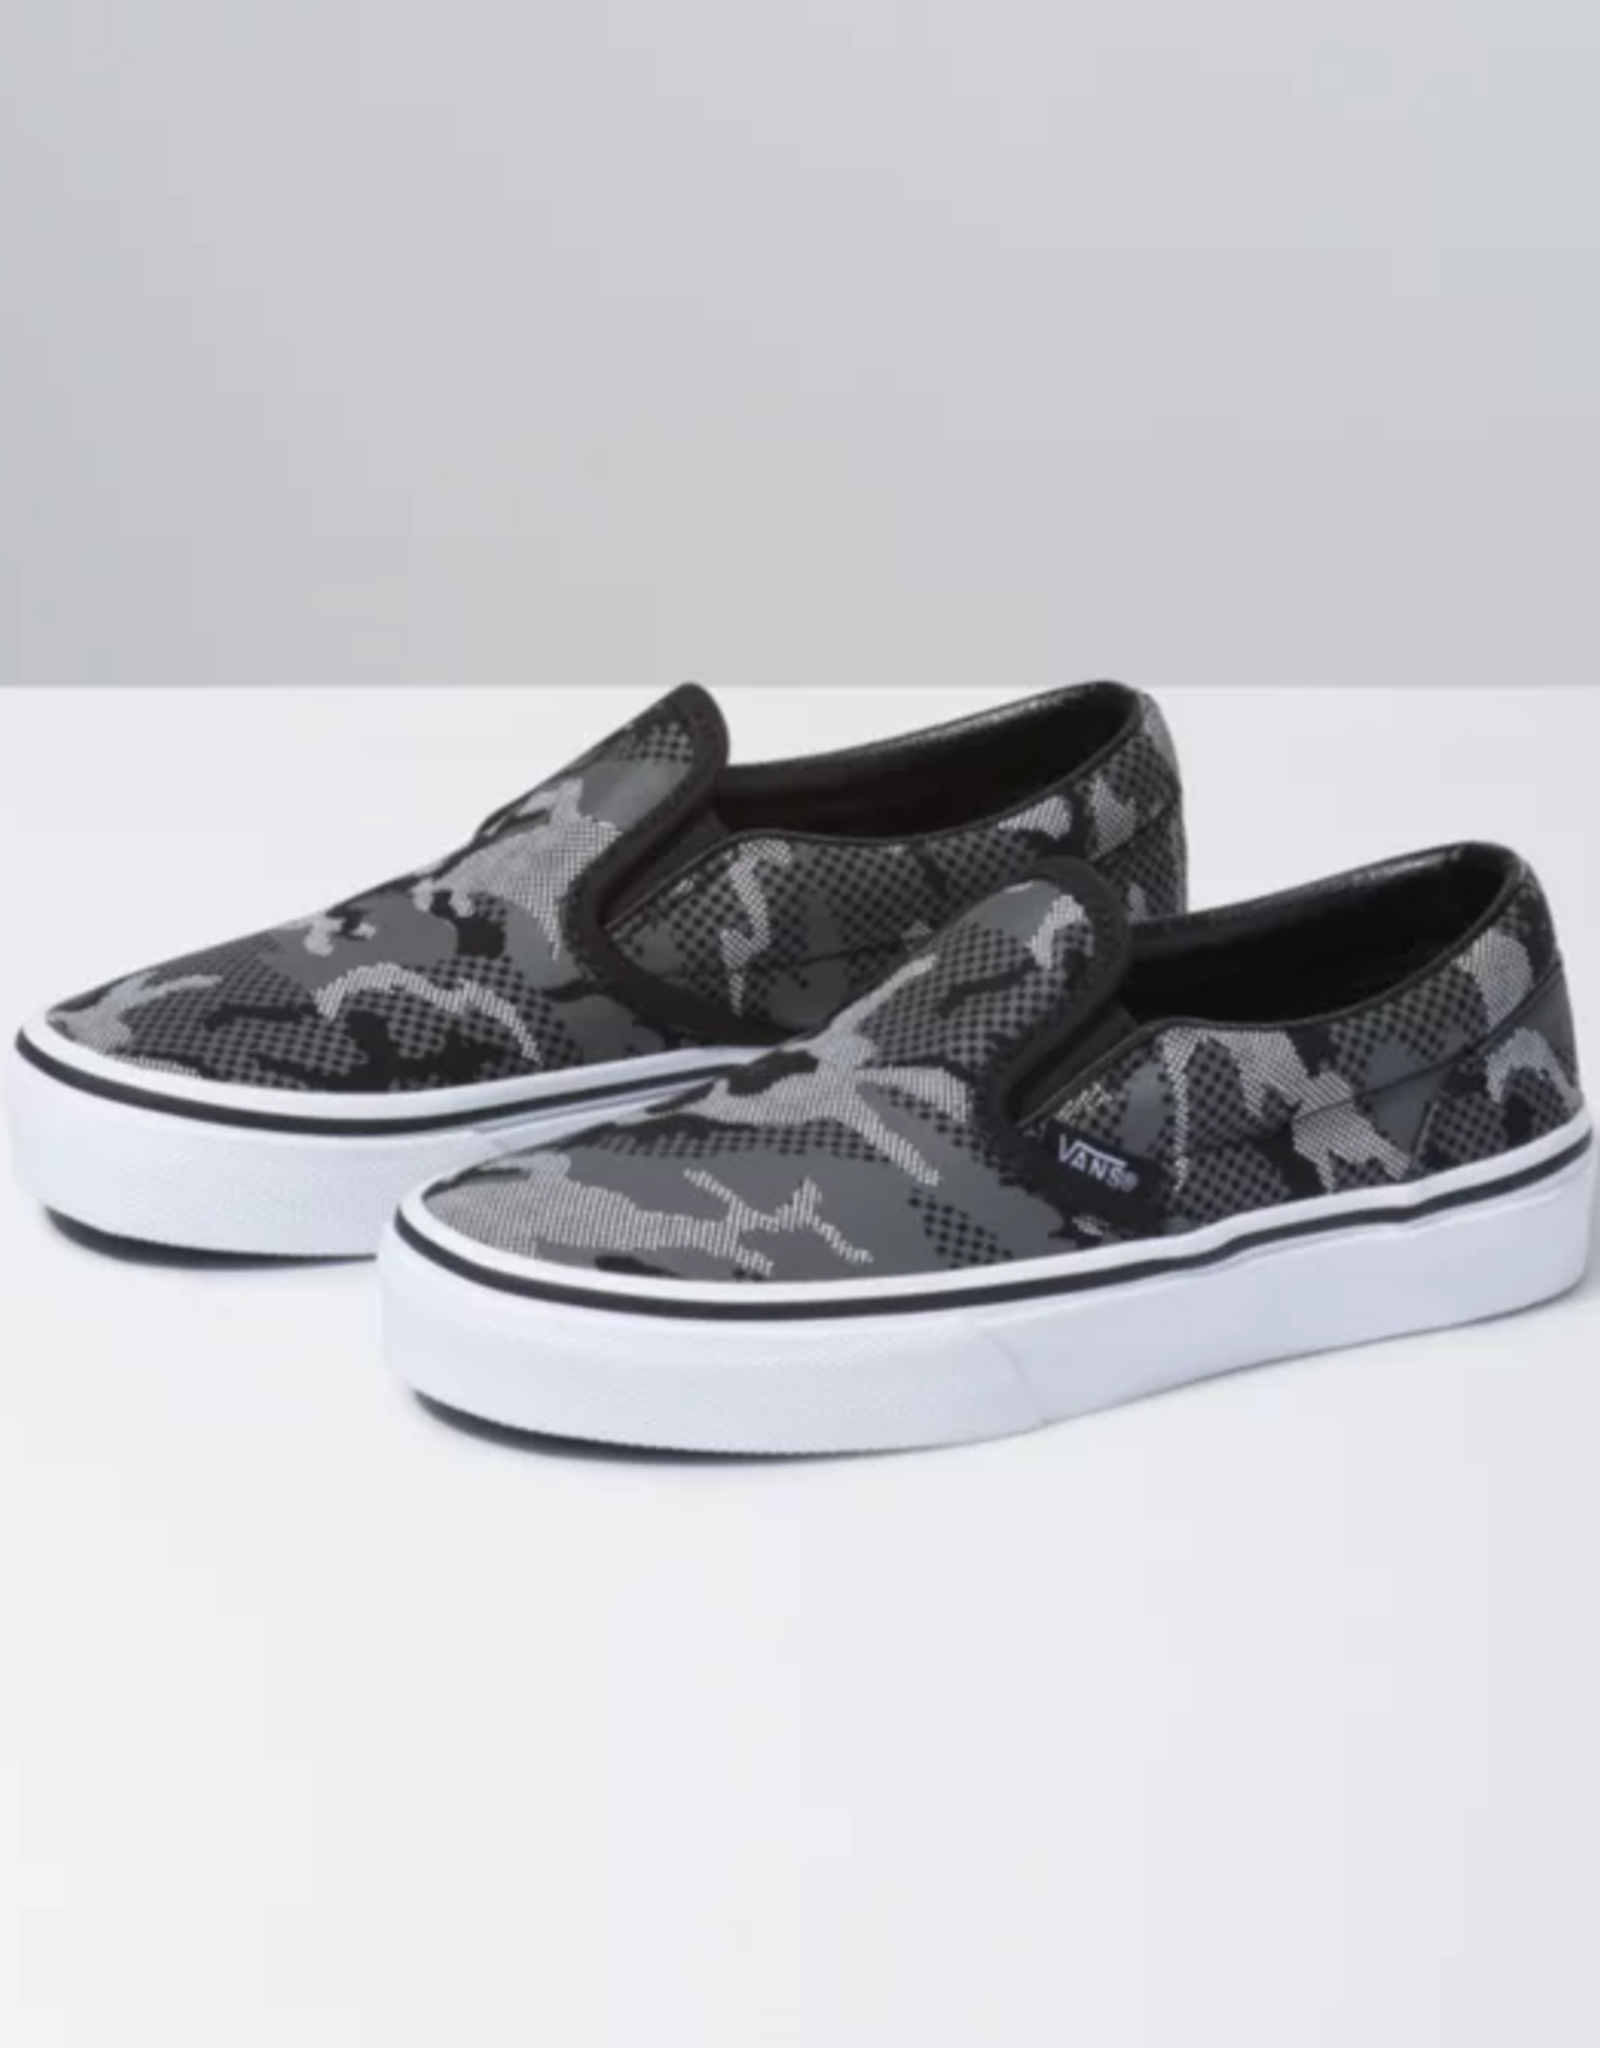 Vans Kids Slip-On Pattern Camo